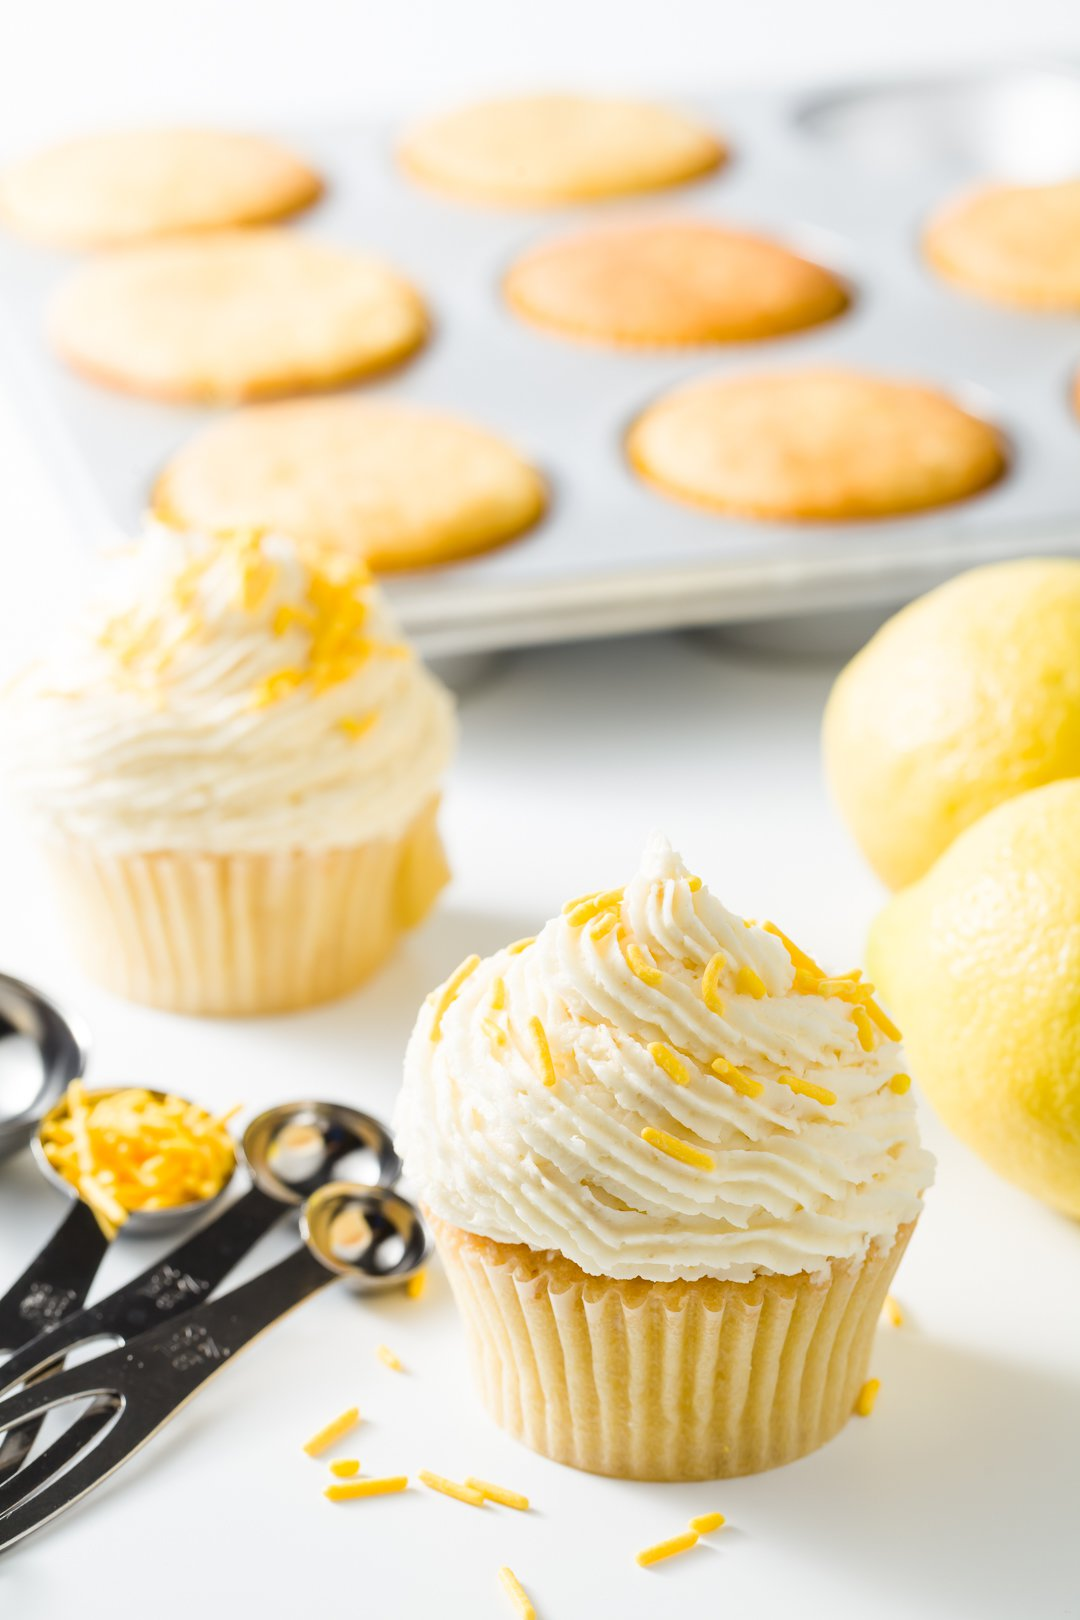 Lemon cupcakes in front of a cupcake tin